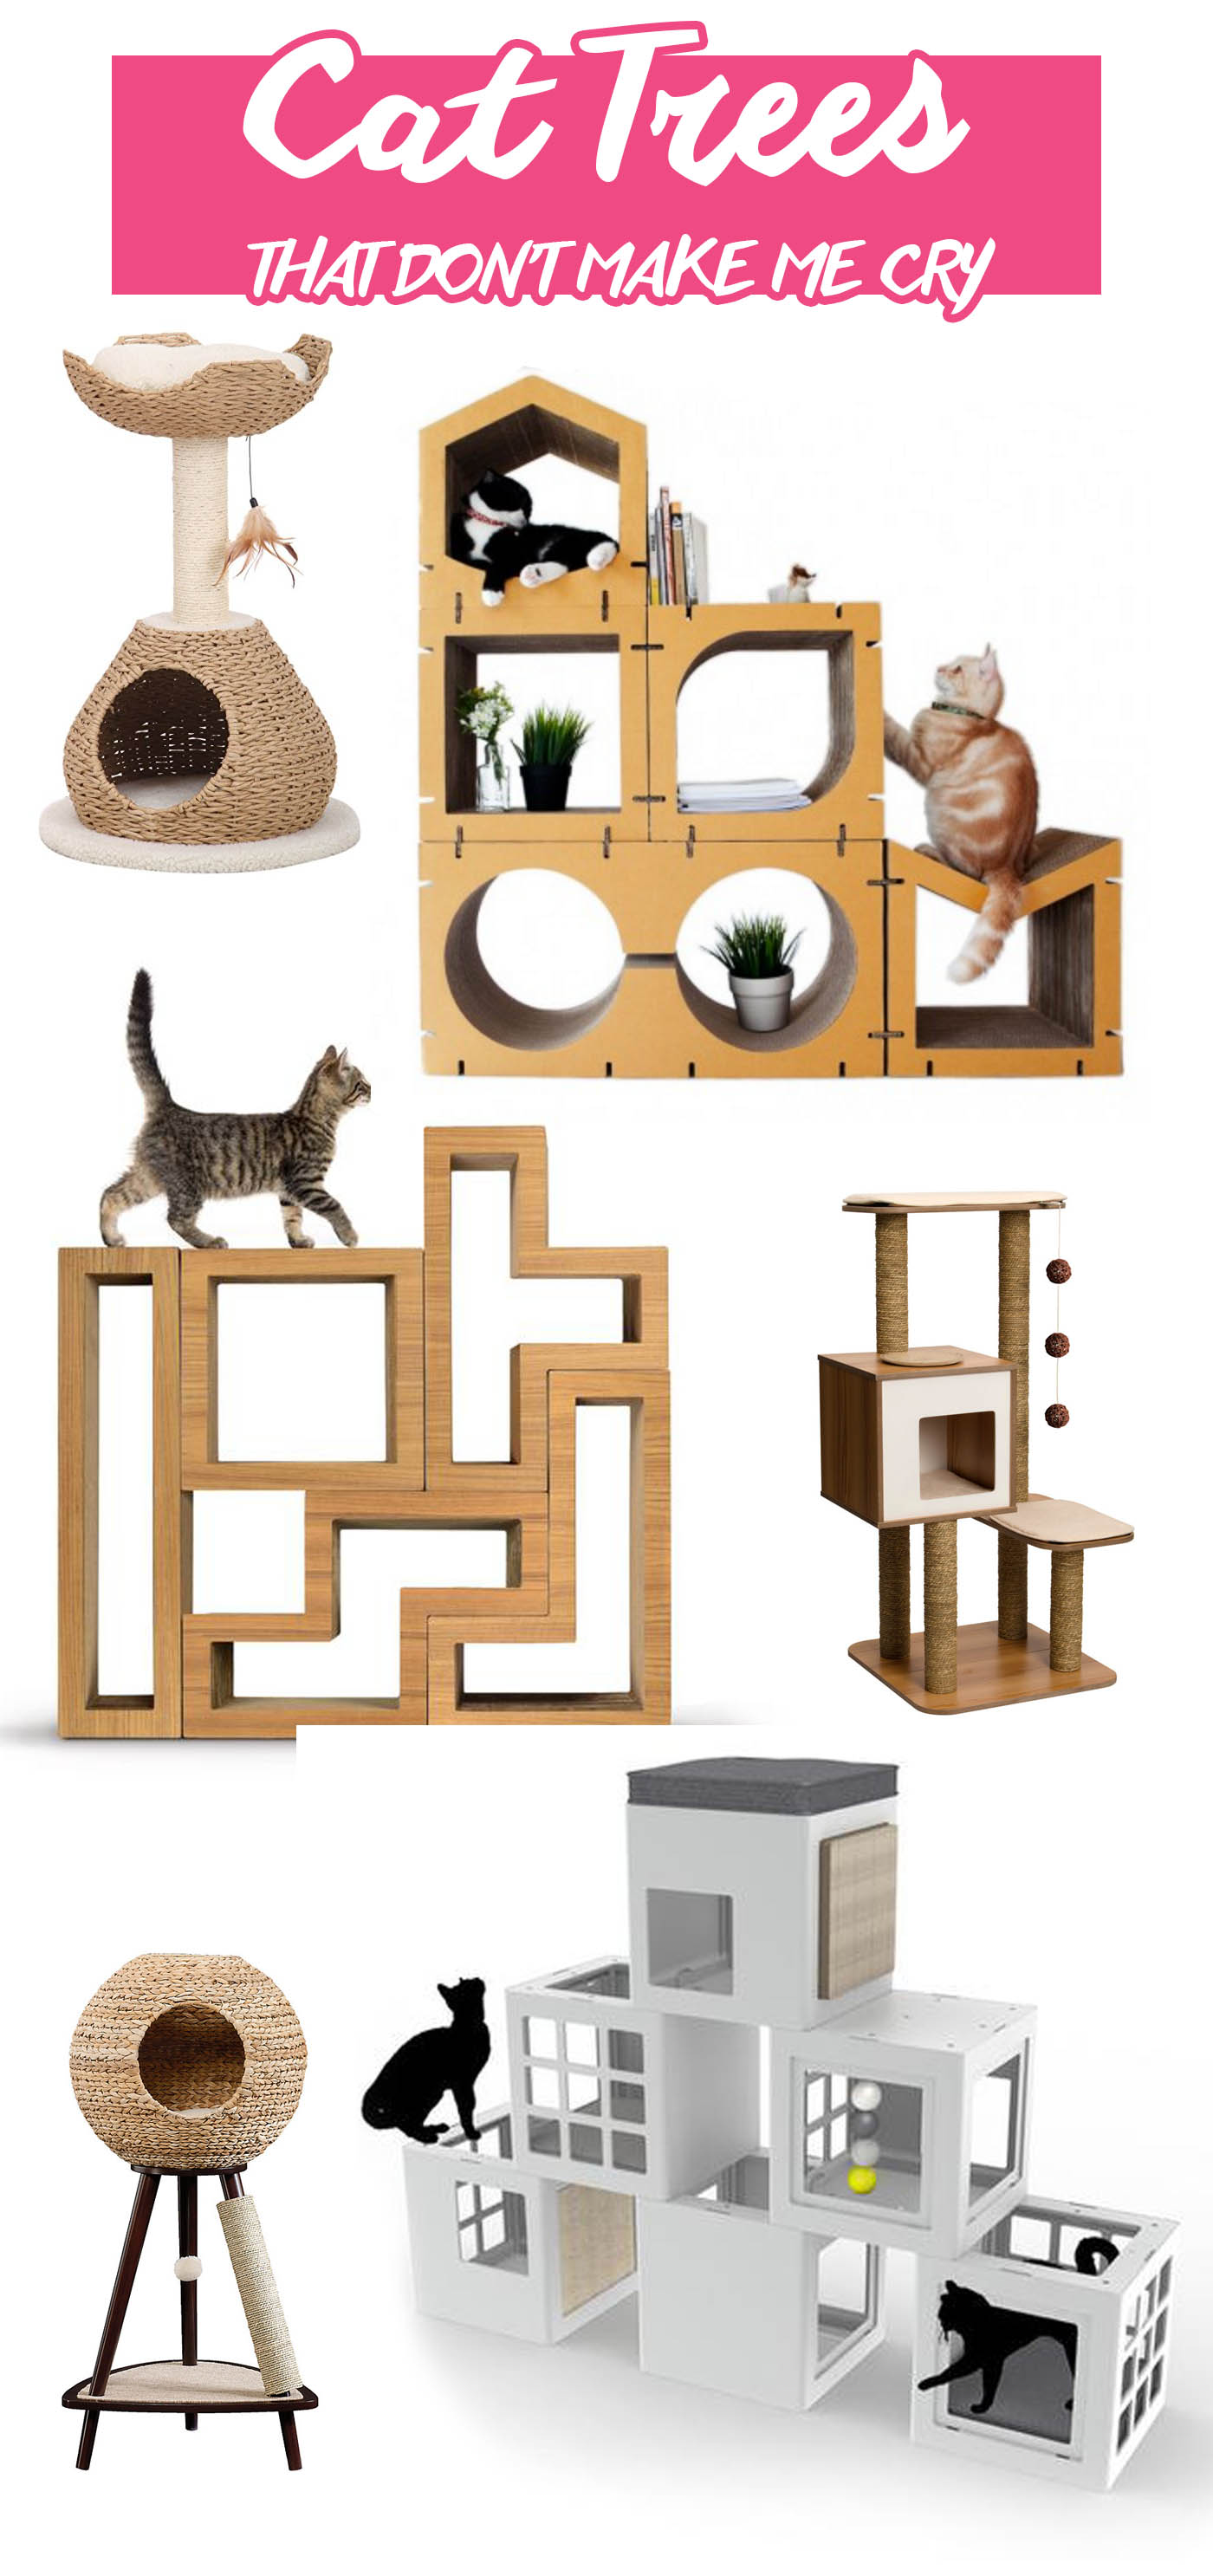 Modern cat trees that don't make me cry. | Unique climbing trees for cats that won't clash with your decor. | Modern Cat Supplies that Don't Make Me Cry